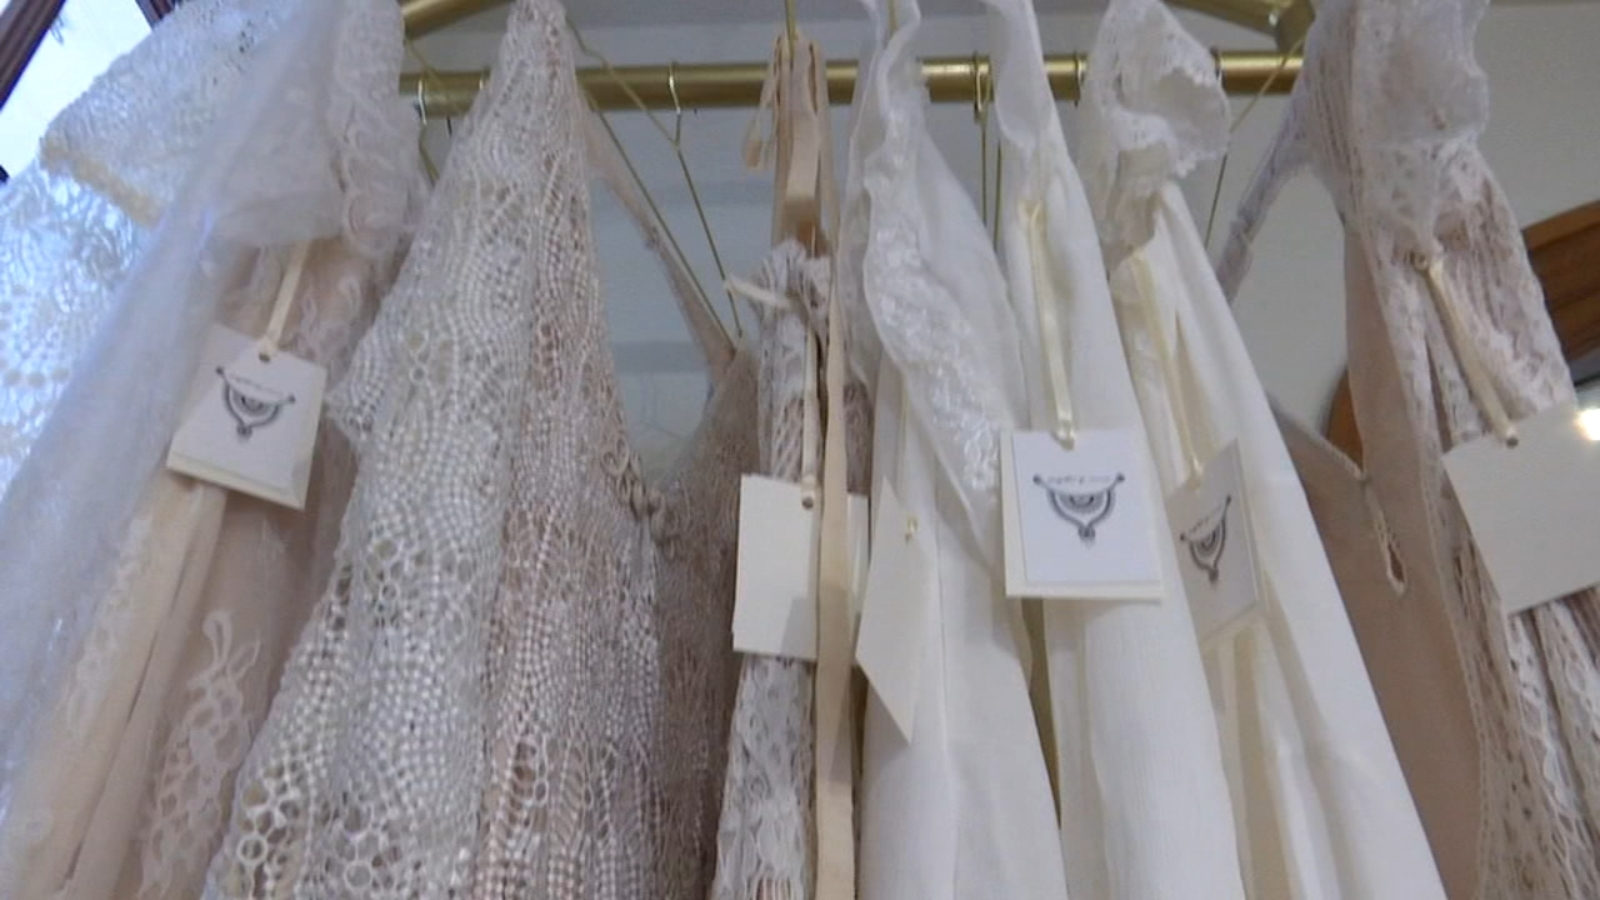 Wedding boutique in Fresno's Tower District give brides different gown options